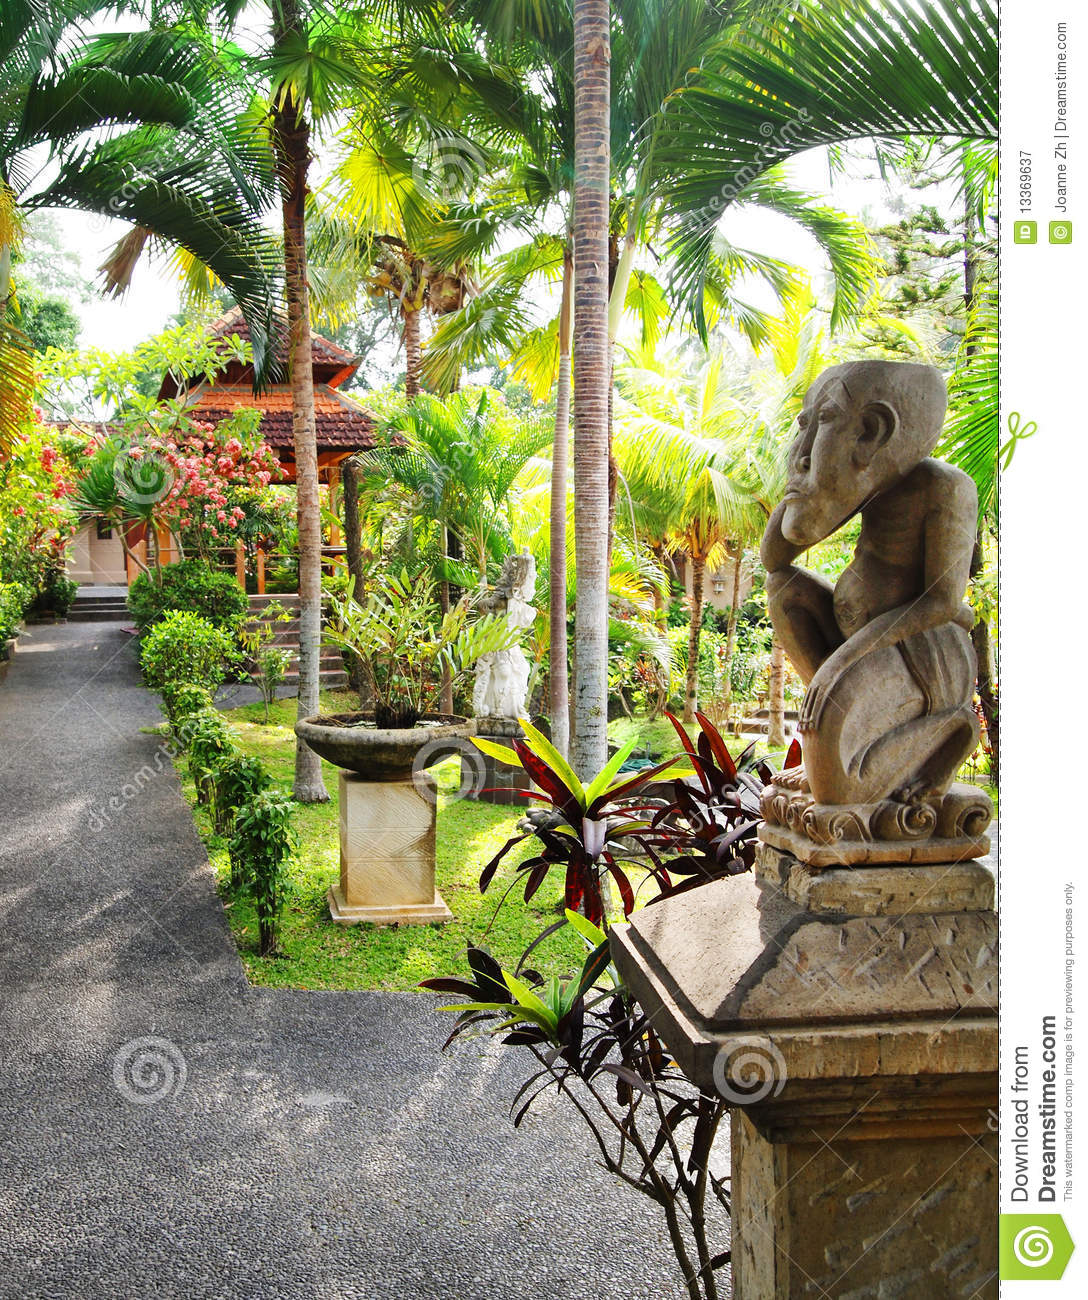 Kimguan furthermore Bali 20Houses also Athena Villas besides Spotlight Geoffrey Bawa furthermore Gallery. on bali tropical house plans